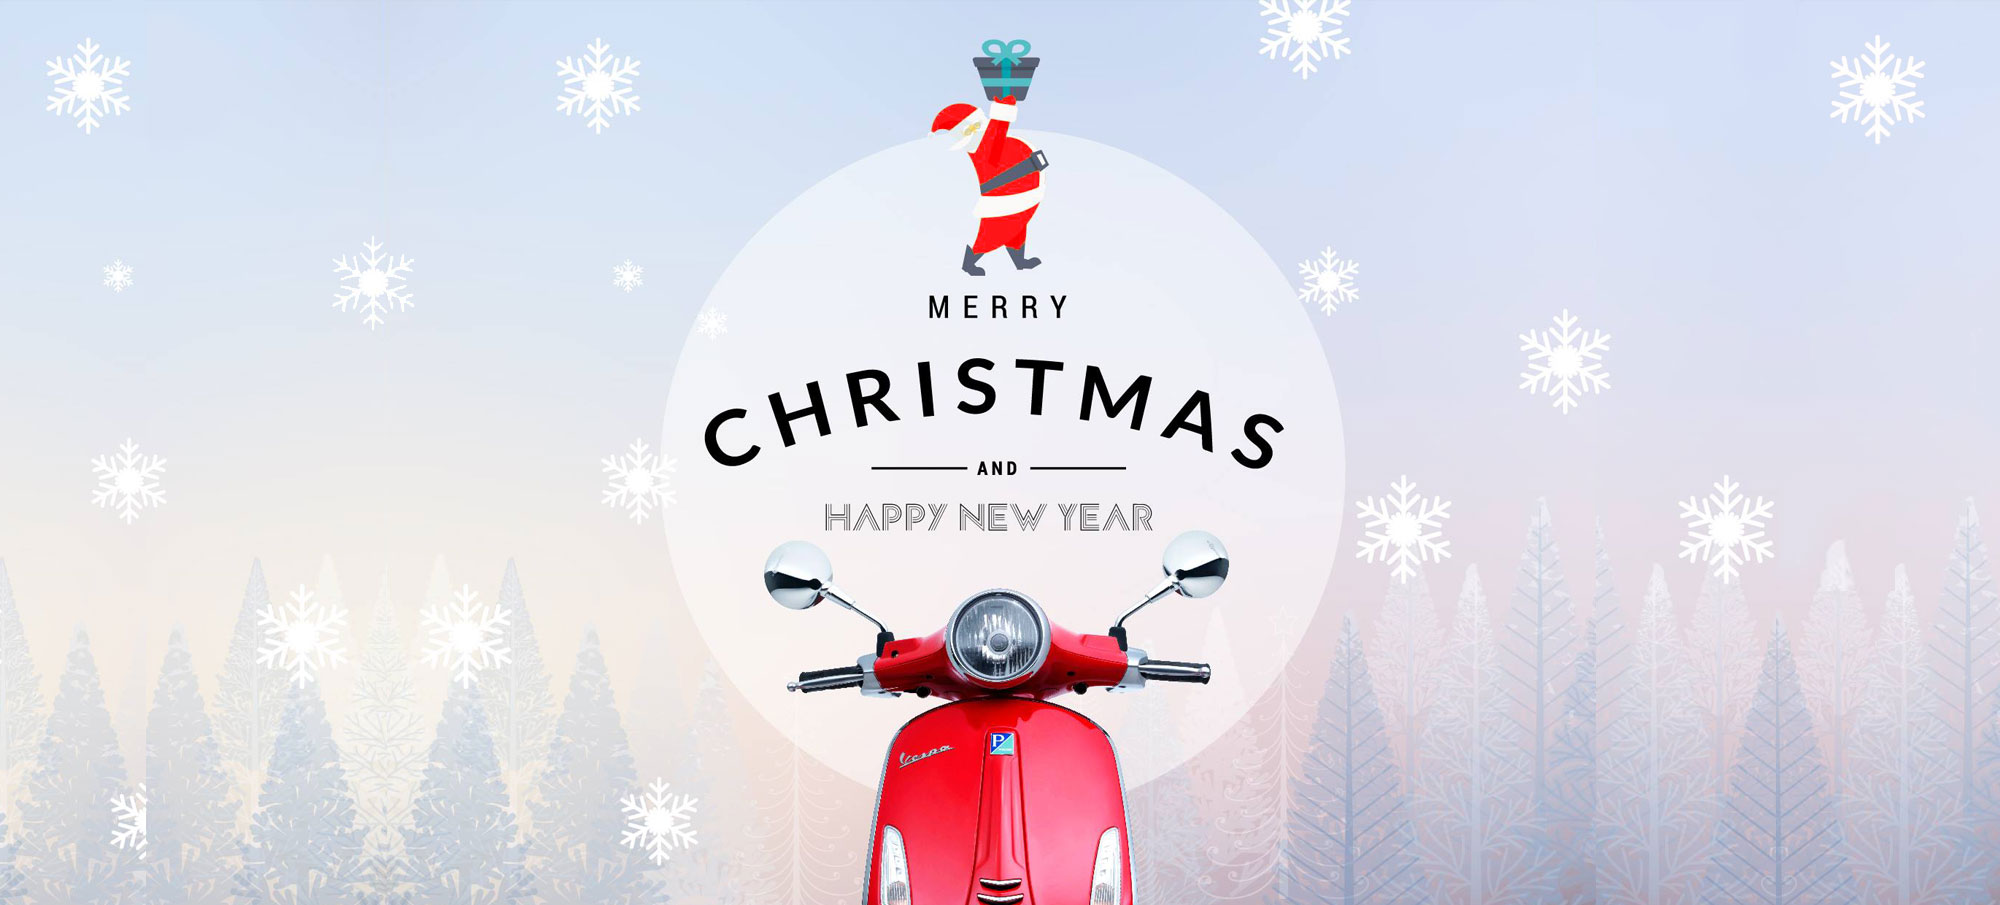 vespa-merry-christmas-happy-new-year-2020